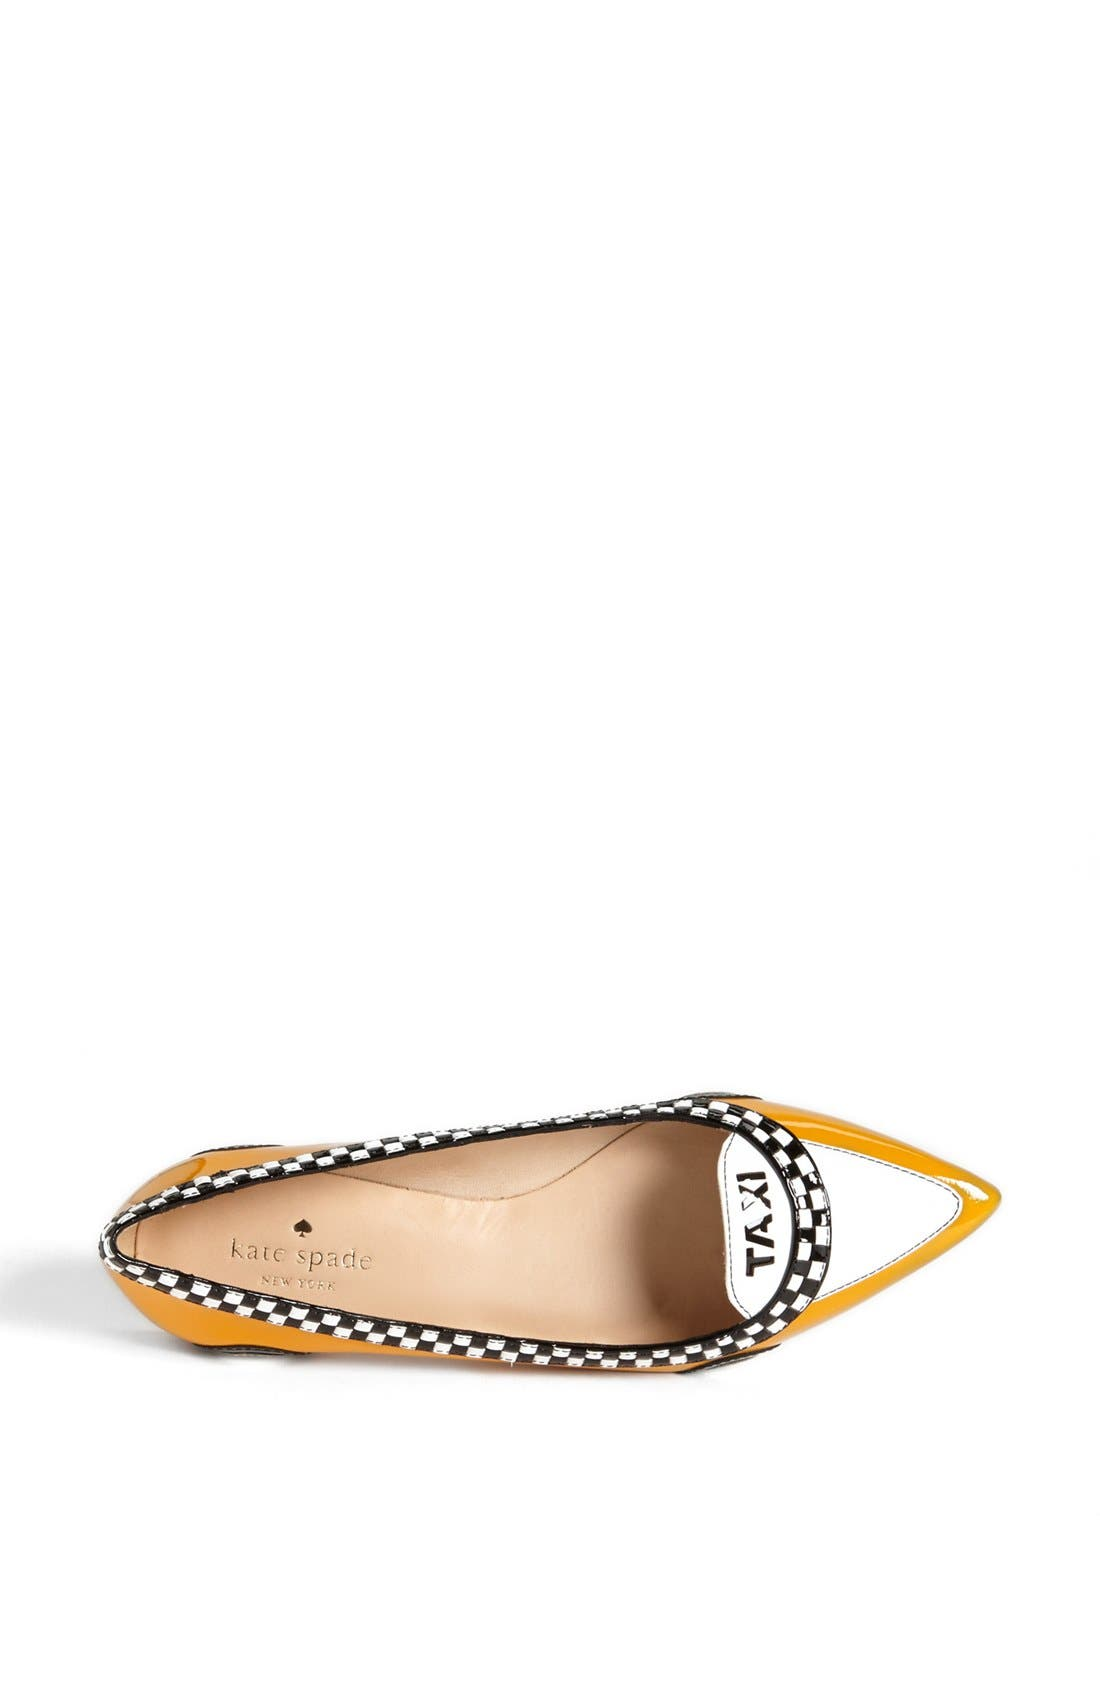 Alternate Image 3  - kate spade new york 'go' flat